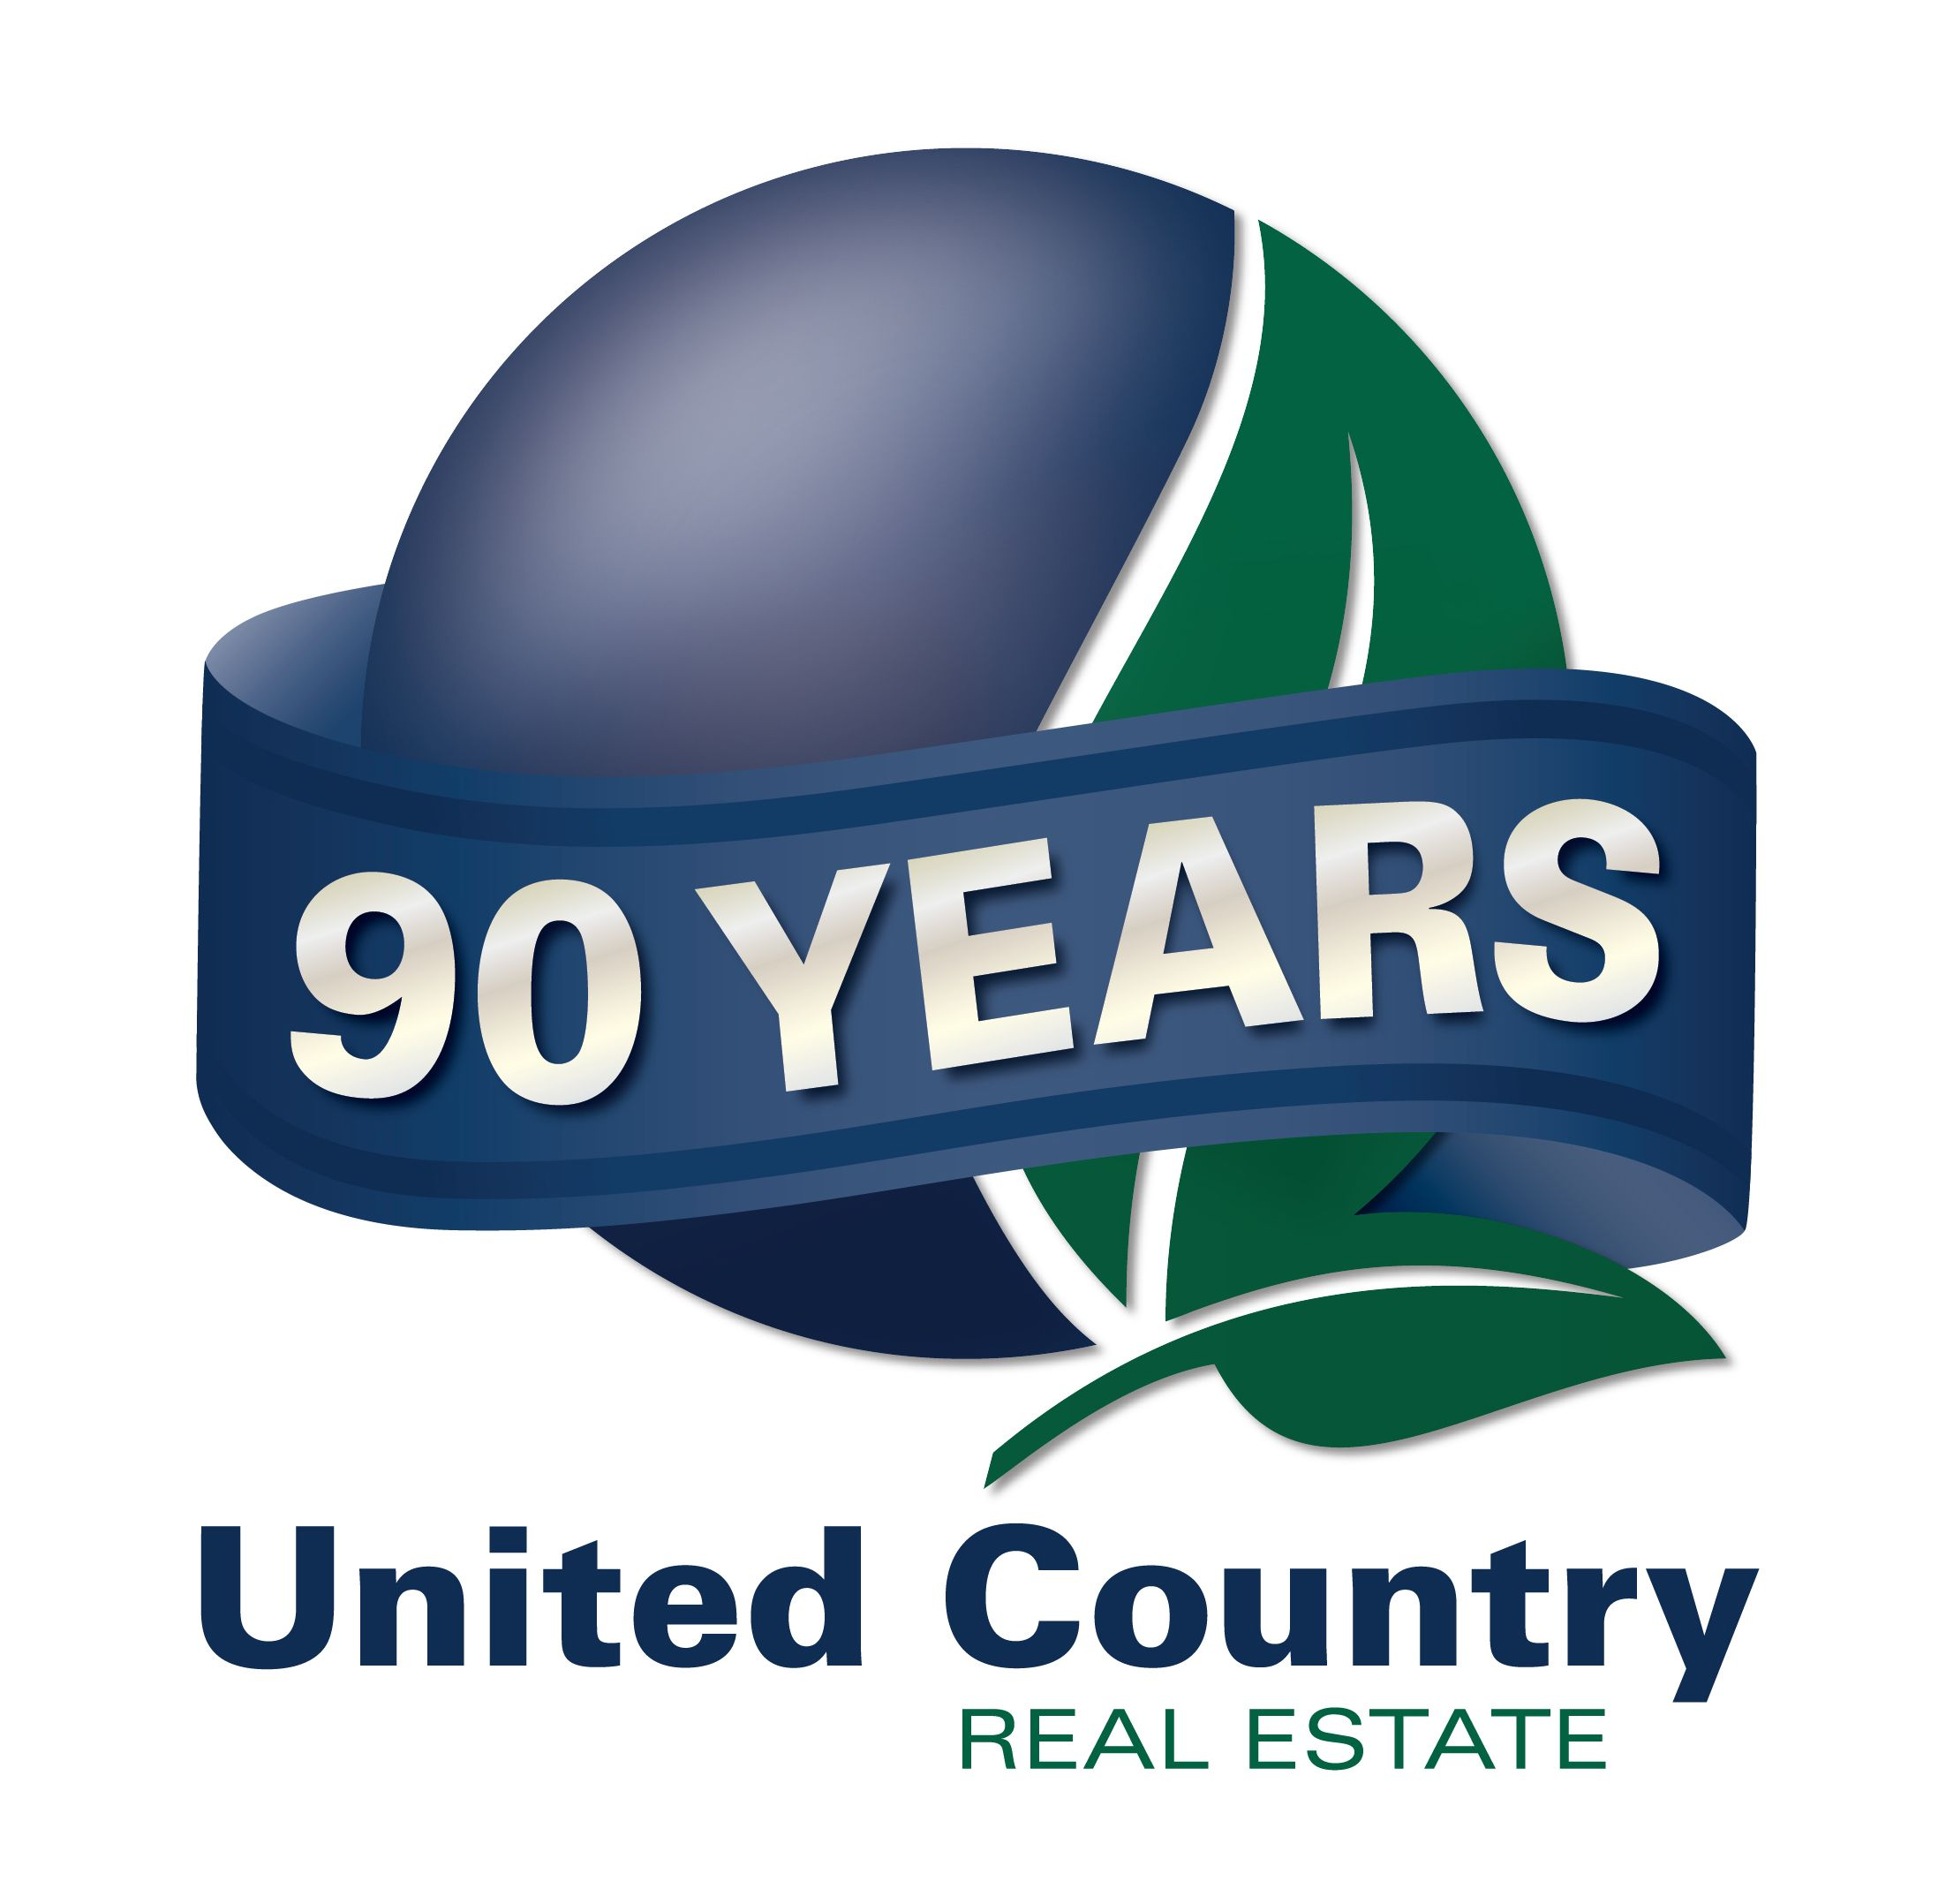 United Country Celebrates 90 Years of History